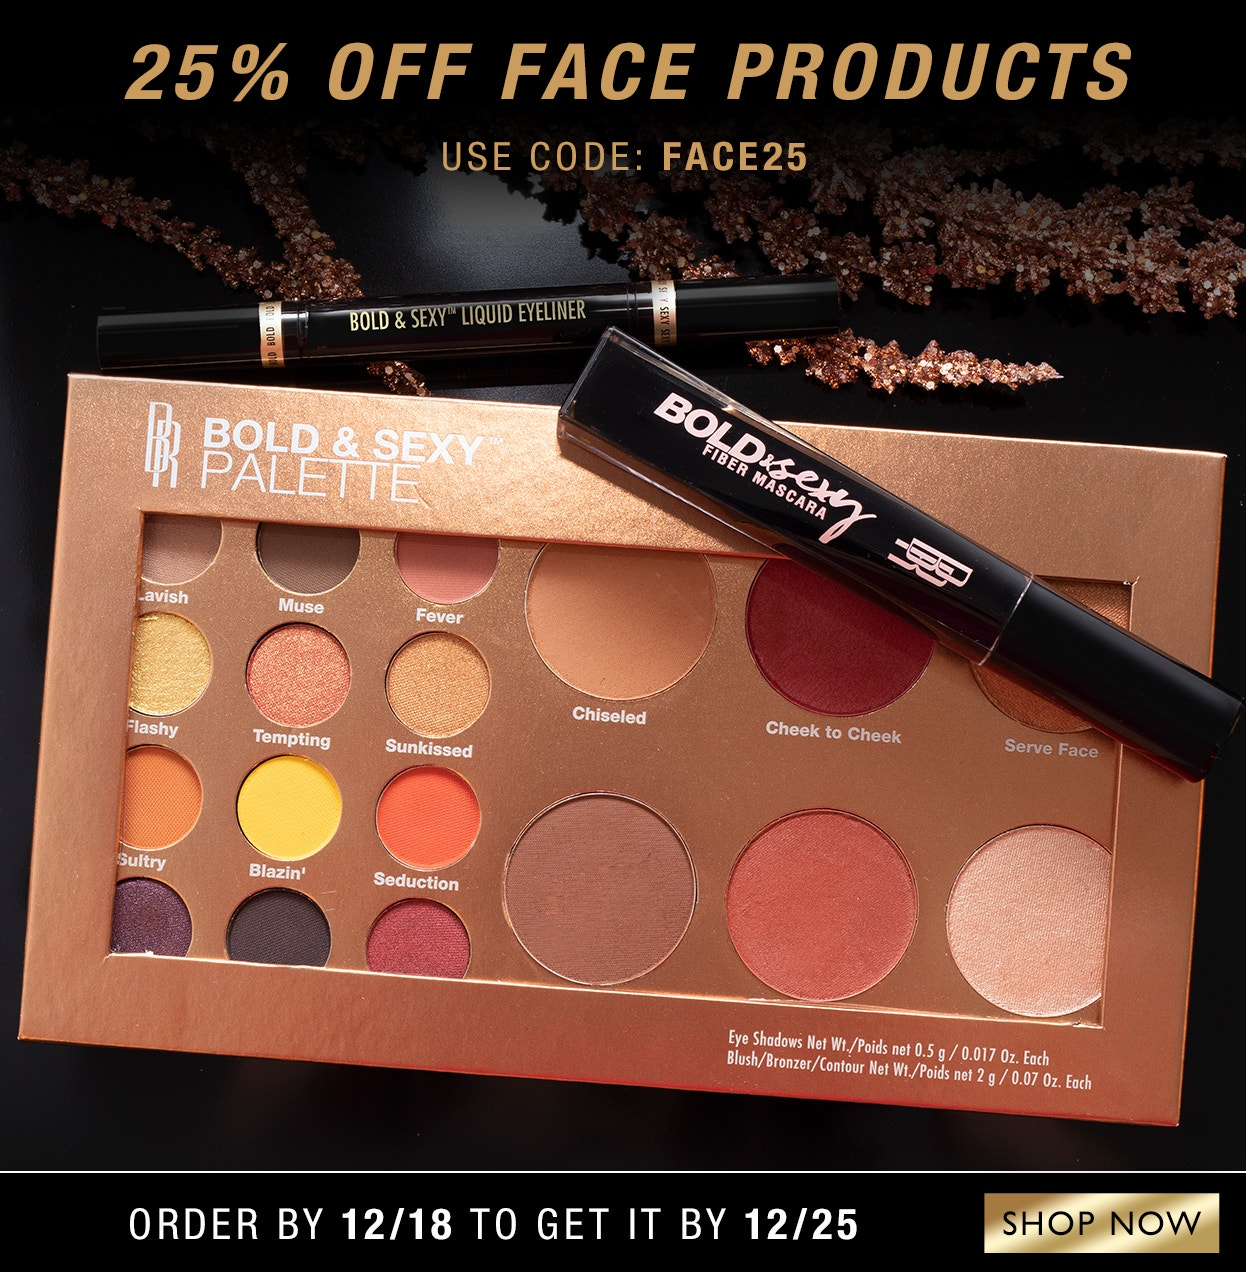 25% Off Face Products | Use Code: FACE25 | Order by 12/17 to get it by Christmas